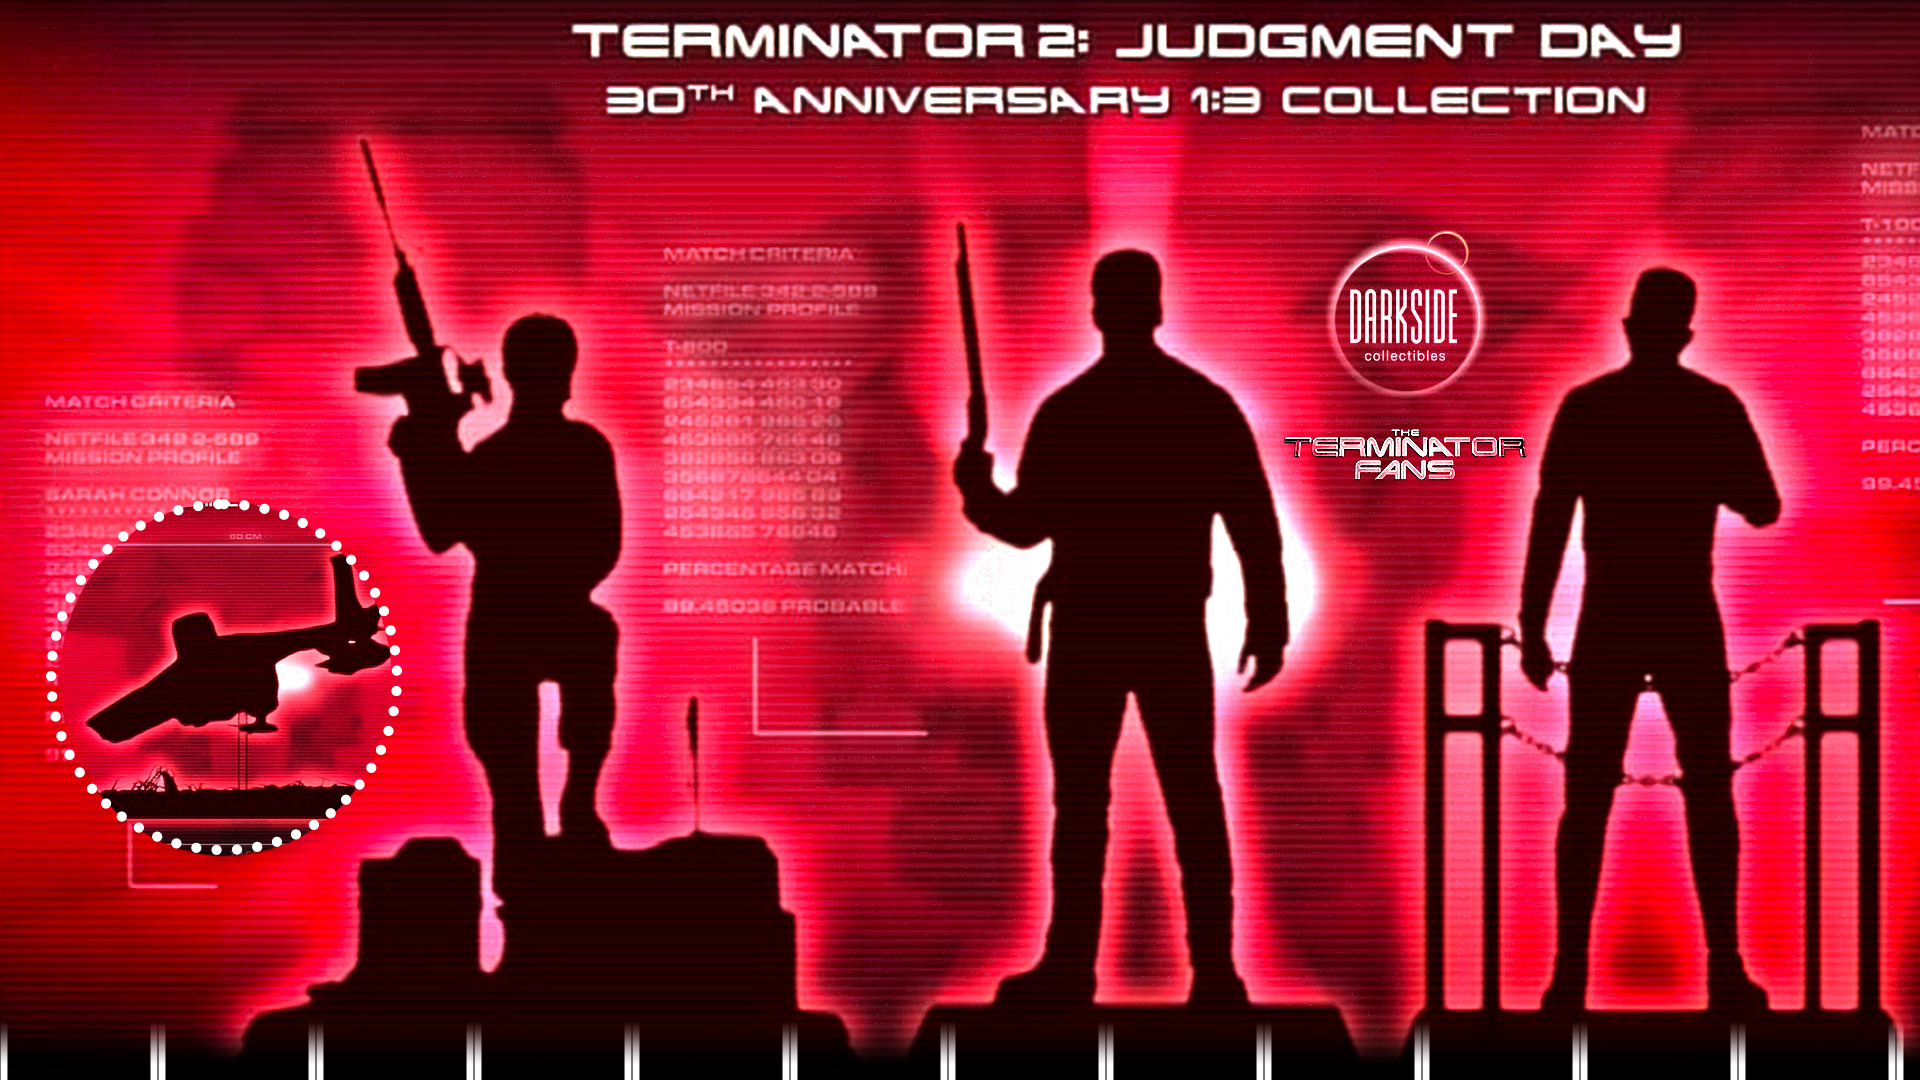 T2 Judgment Day 30th Anniversary Collection Darkside Collectibles Studio (Terminator)